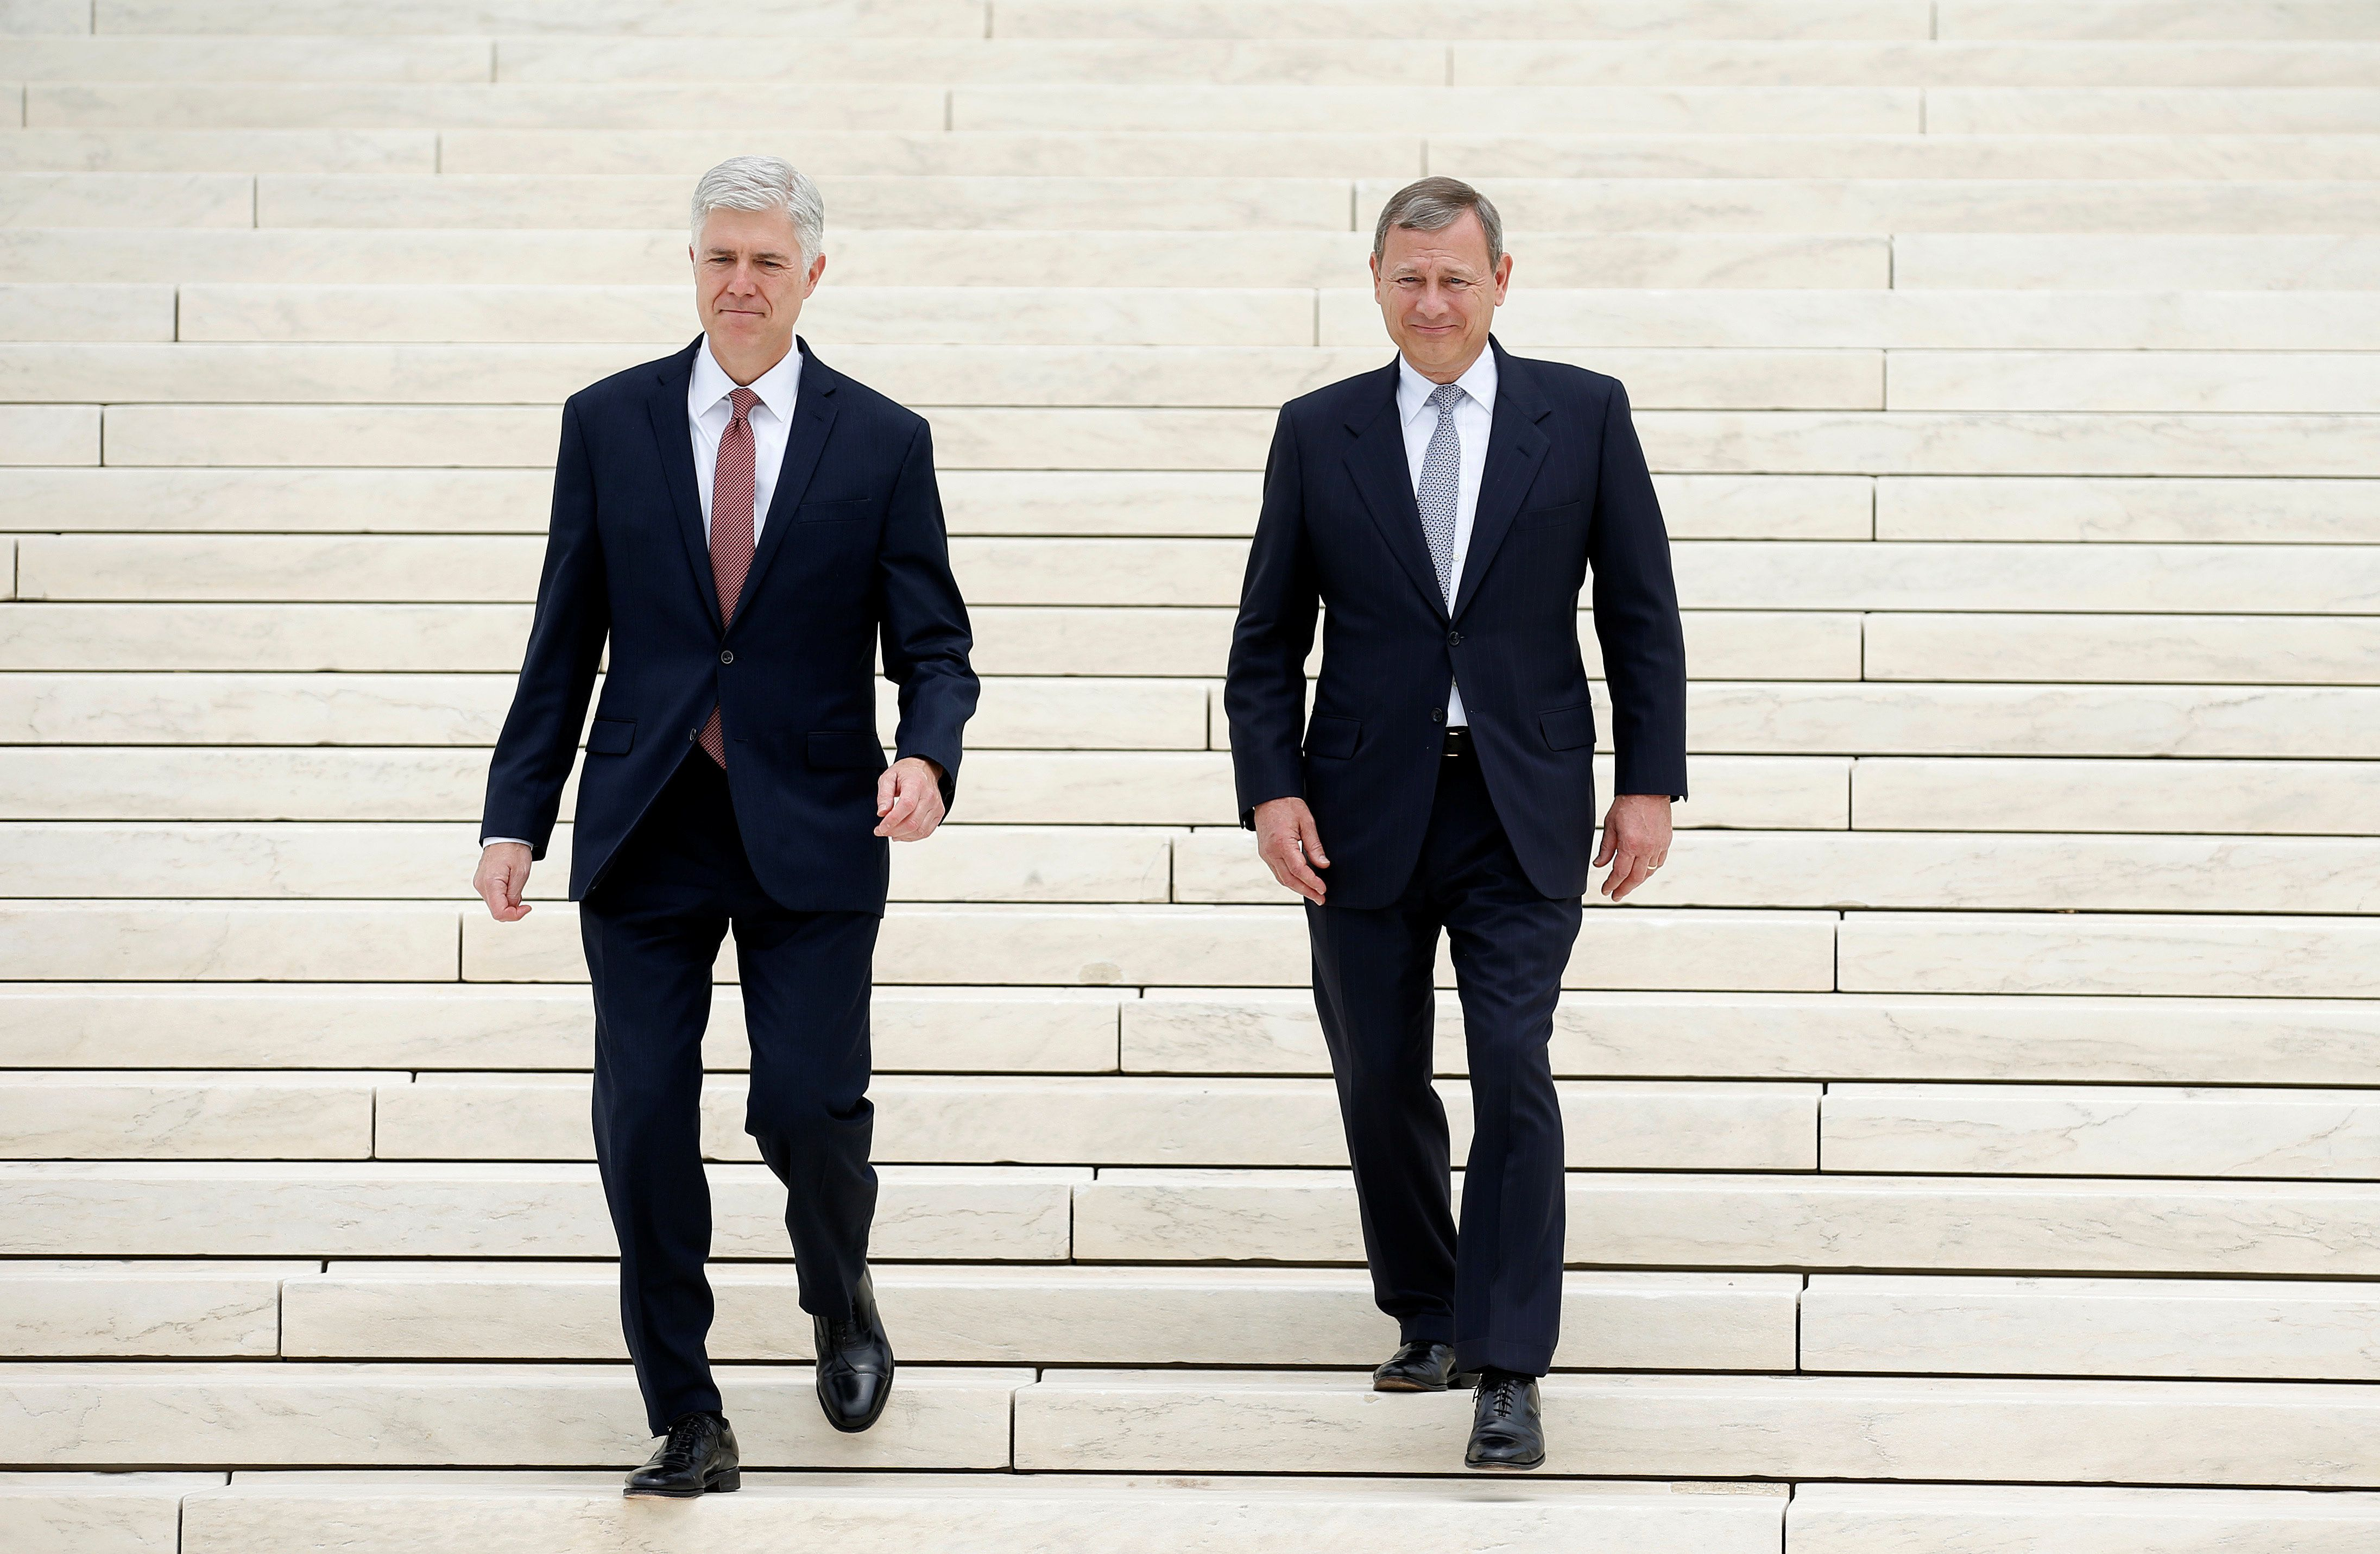 Chief Justice of the United States John Roberts (R) walks with associate Justice Neil Gorsuch during his investiture ceremony at the Supreme Court in Washington, U.S., June 15, 2017.   REUTERS/Joshua Roberts